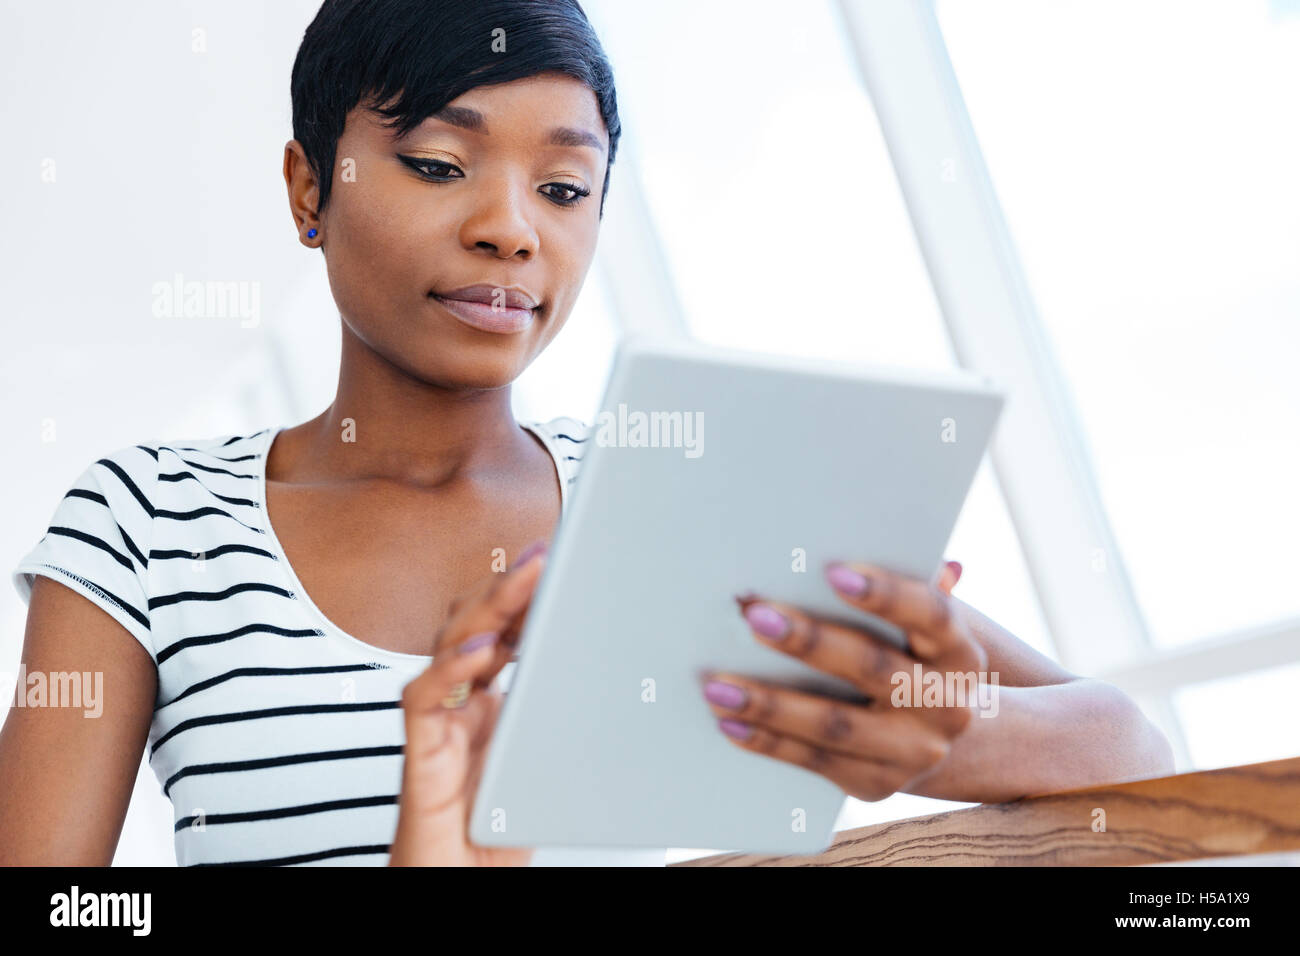 Attractive afro american businesswoman using tablet computer in office Stock Photo